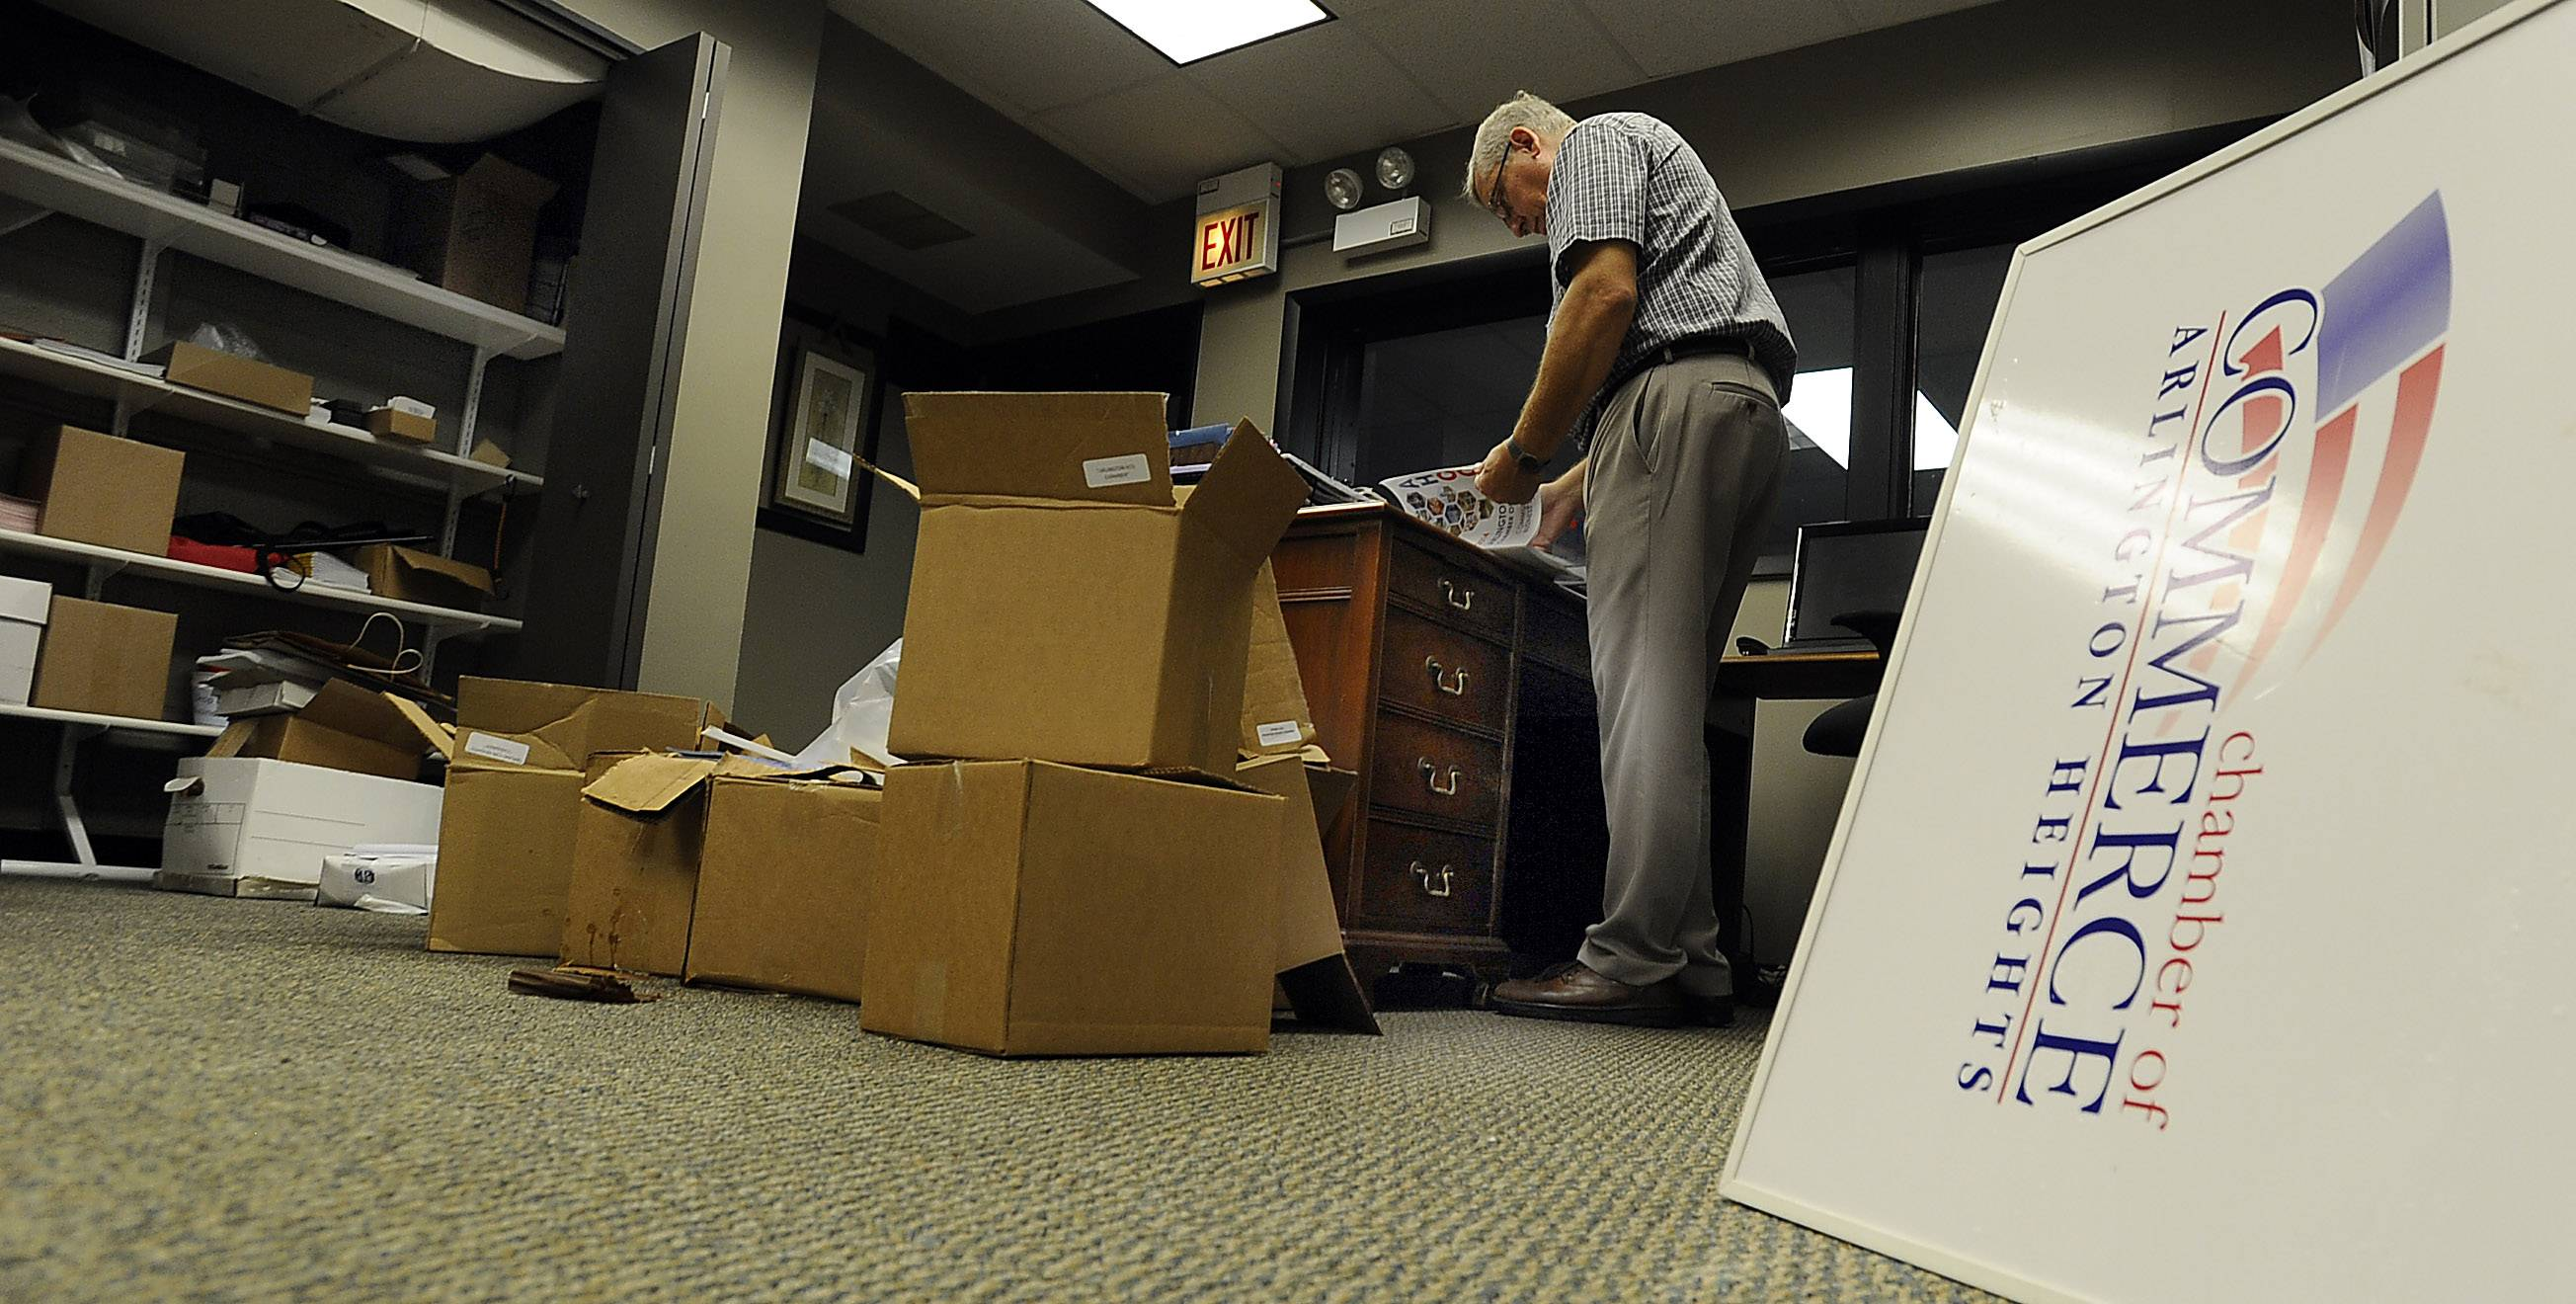 Employees of the Arlington Heights Chamber of Commerce go about their work Monday, around the water-soaked boxes of materials. The office got about 4 inches of water over the weekend — the second time their office has been flooded.